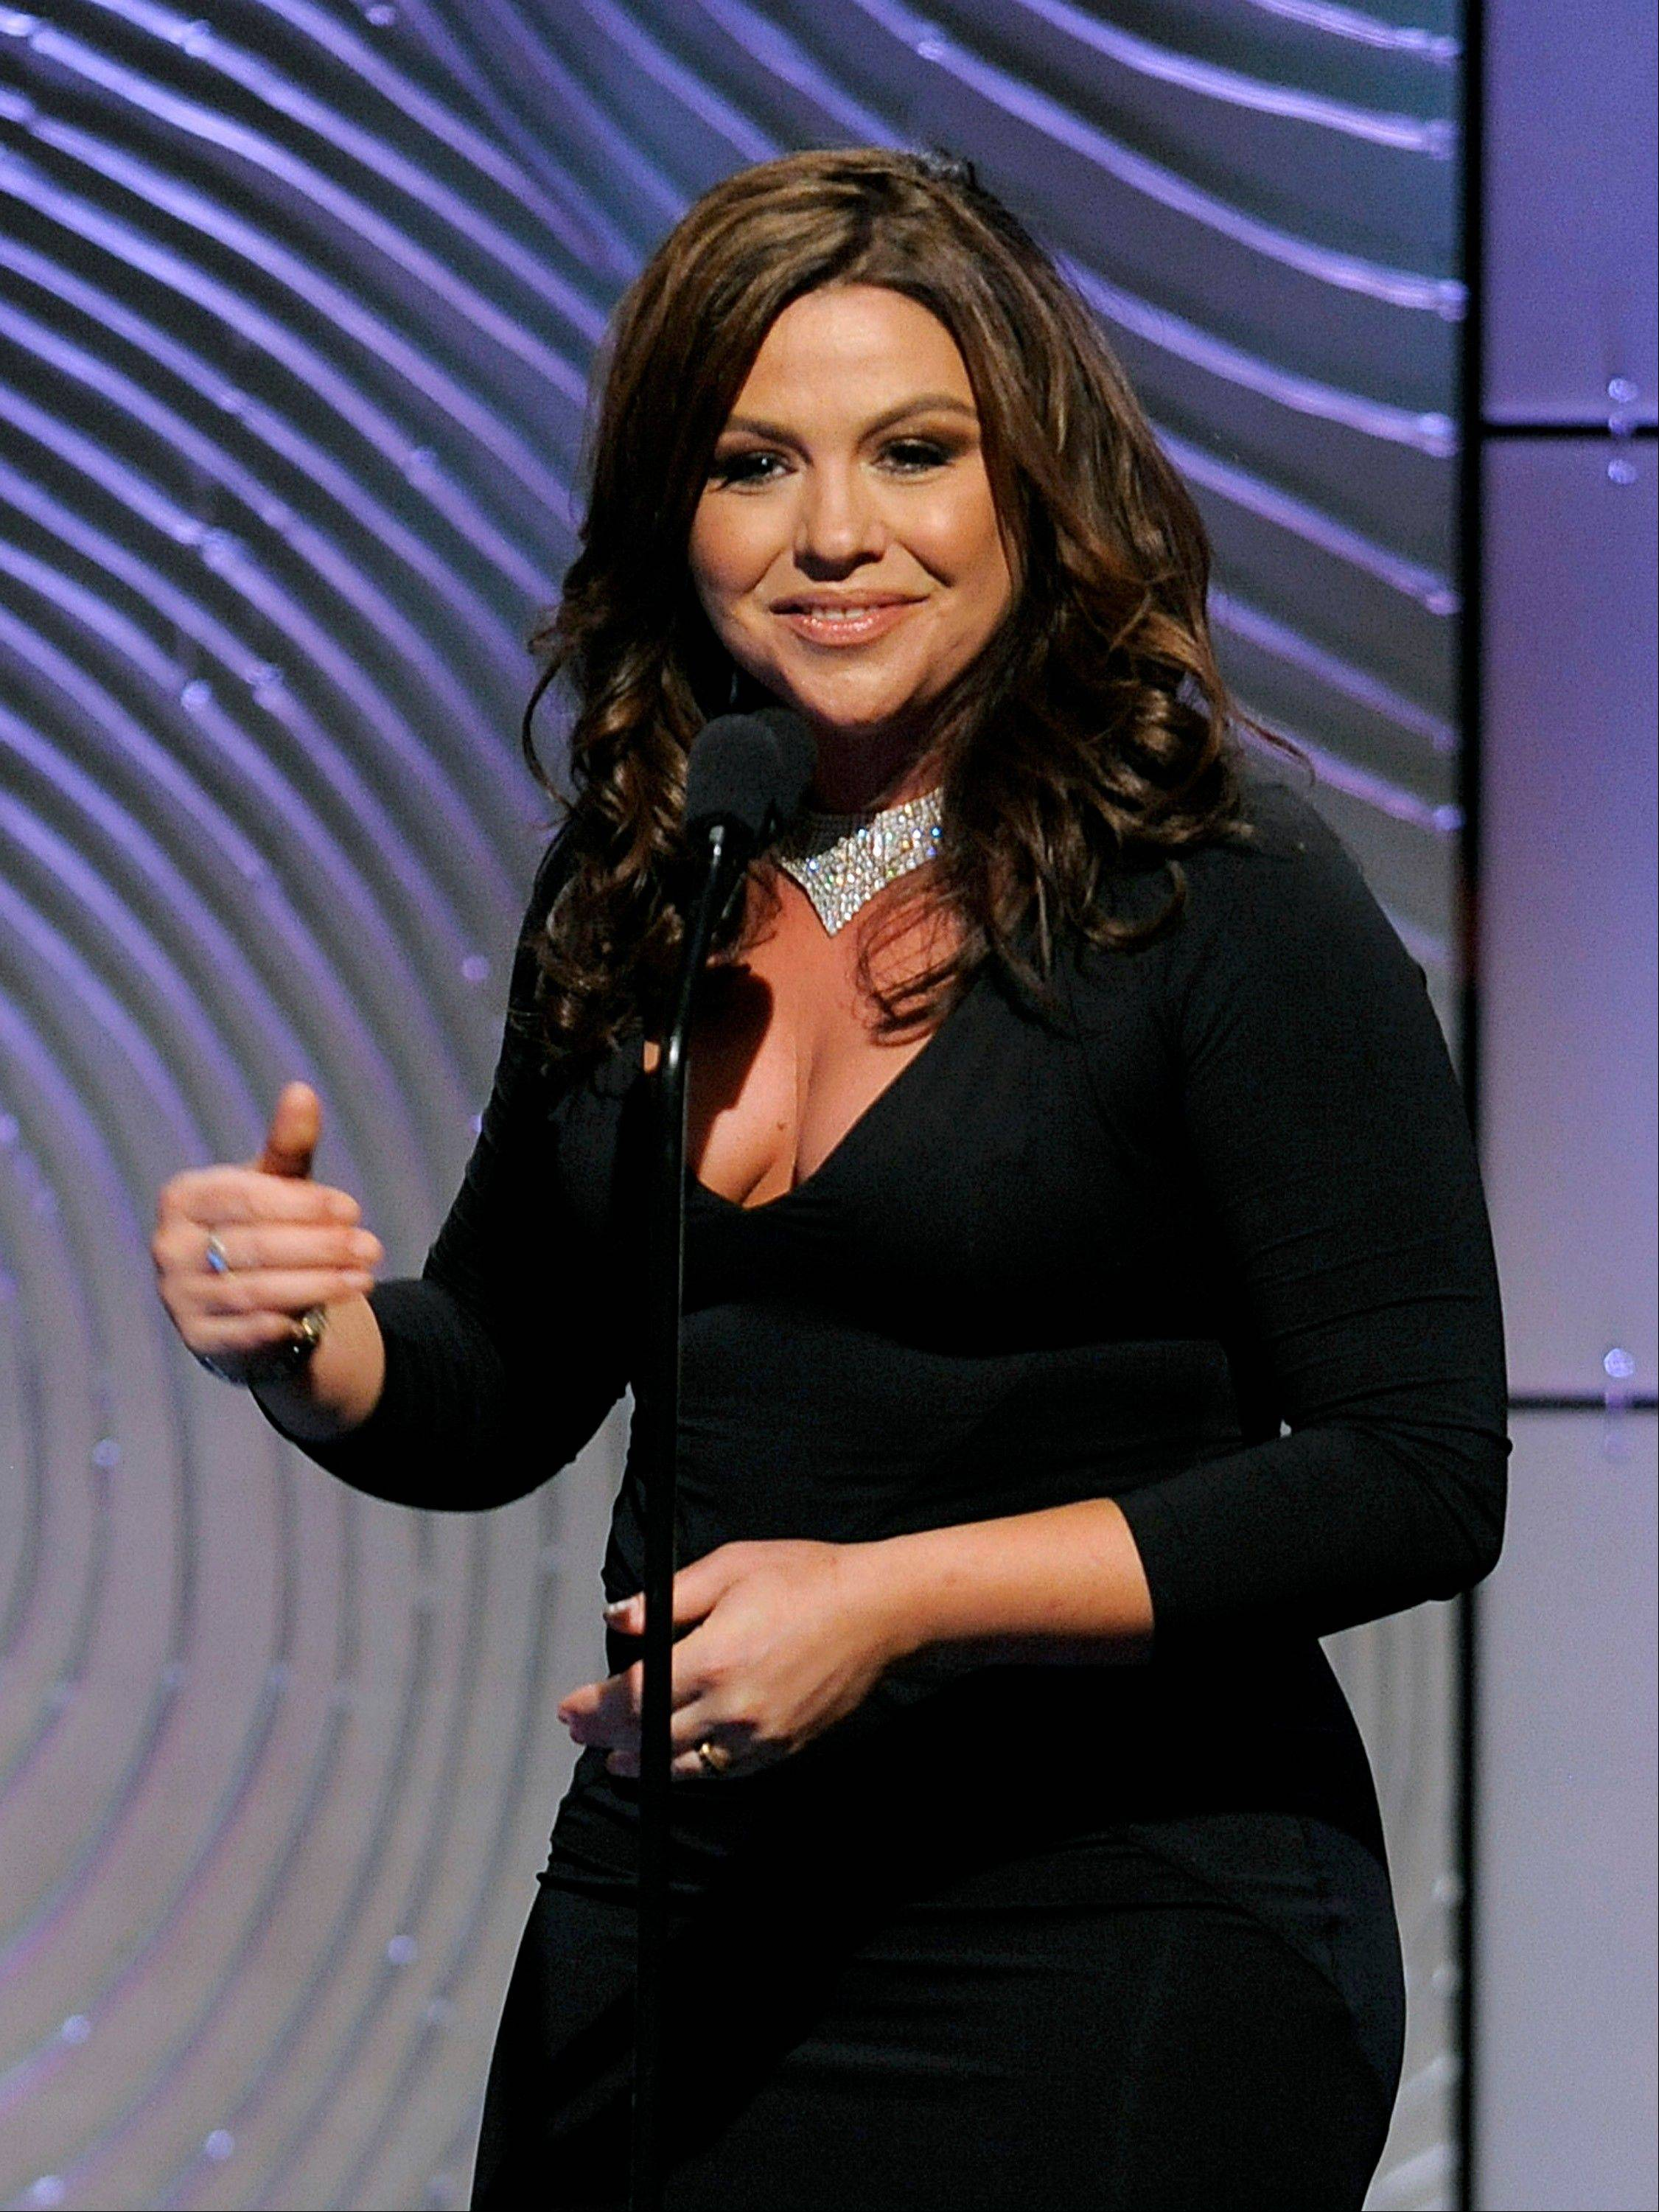 Rachael Ray speaks on stage at the 40th Annual Daytime Emmy Awards on Sunday, June 16, 2013, in Beverly Hills, Calif.